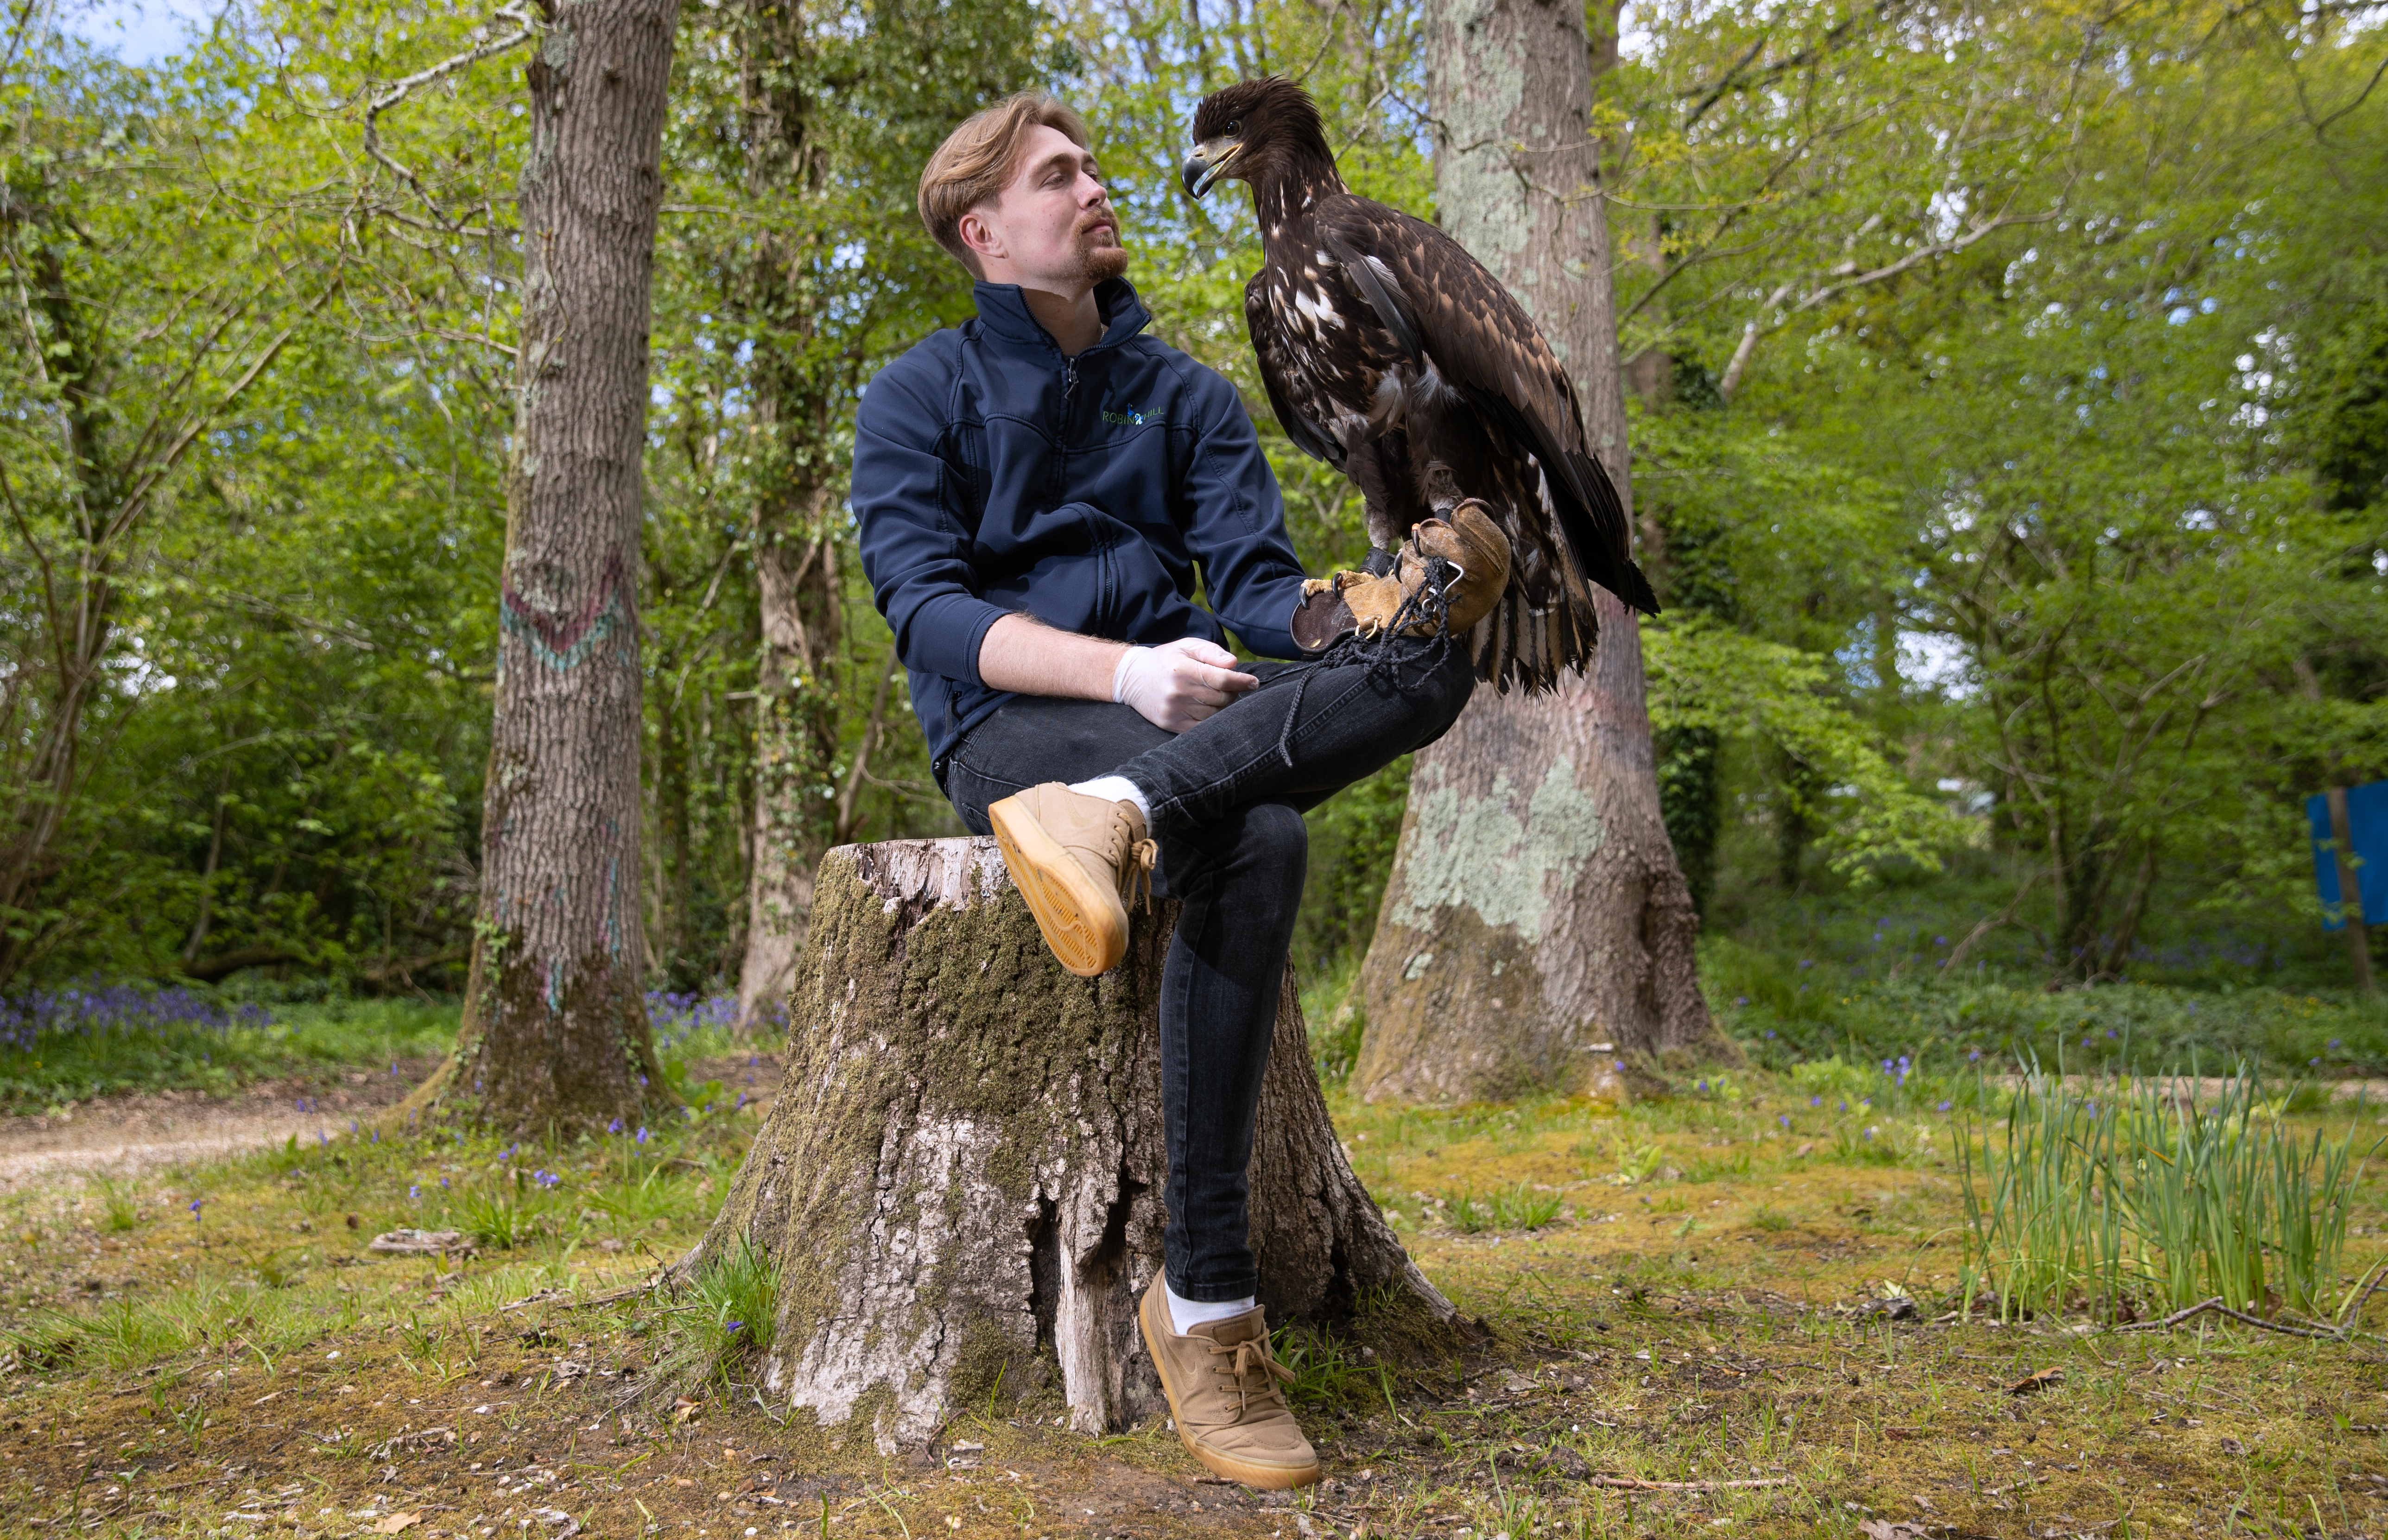 <p>EMBARGOED TO 0001 THURSDAY MAY 13 Falconer Charlie Rolle holds Chief, a 10-month-old white-tailed sea eagle, which is the UK's largest bird of prey and a species extinct around 200 years ago, at his new home at the nature and tourist destination, Robin Hill Park, near Newport on the Isle Of Wight. Picture date: Wednesday May 12, 2021.</p>